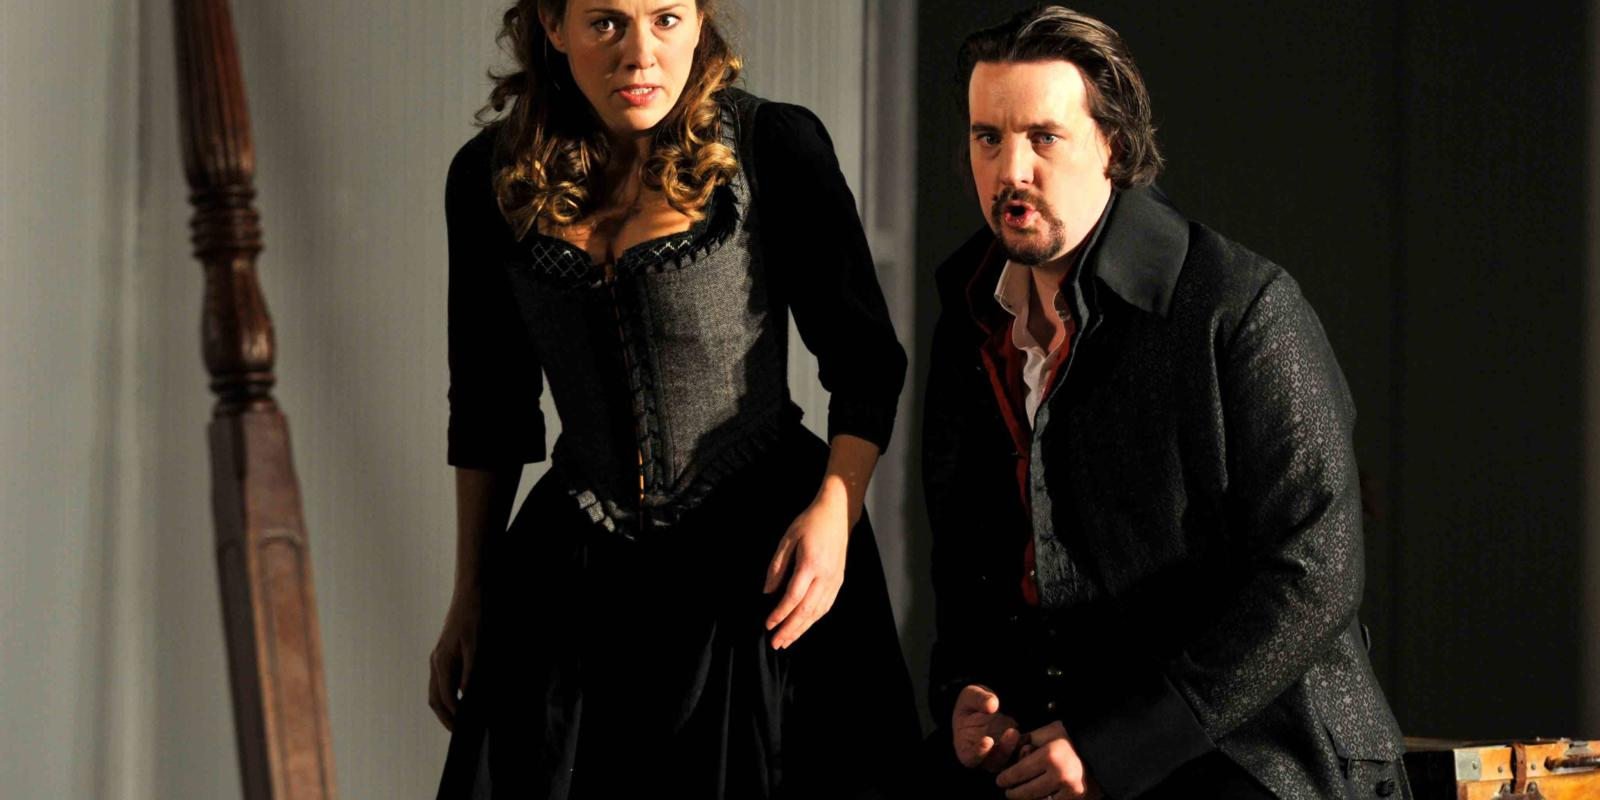 An image of Mary Bevan and Benedict Nelson in Fiona Shaw's 2014 production of The Marriage of Figaro